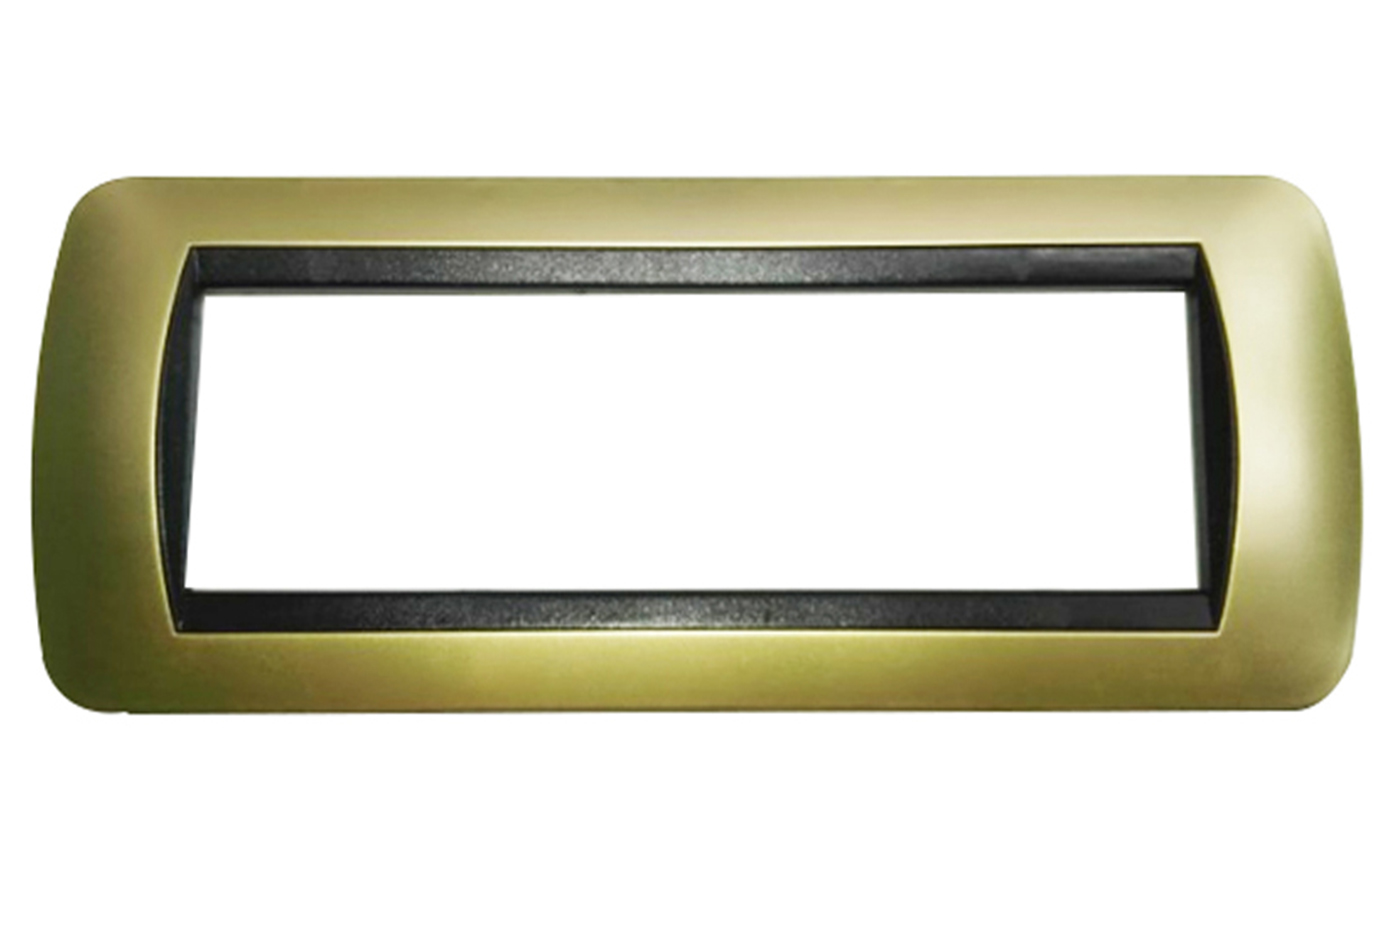 Placchetta placca bronzo compatibile living 7 posti copri interruttore 48007-12